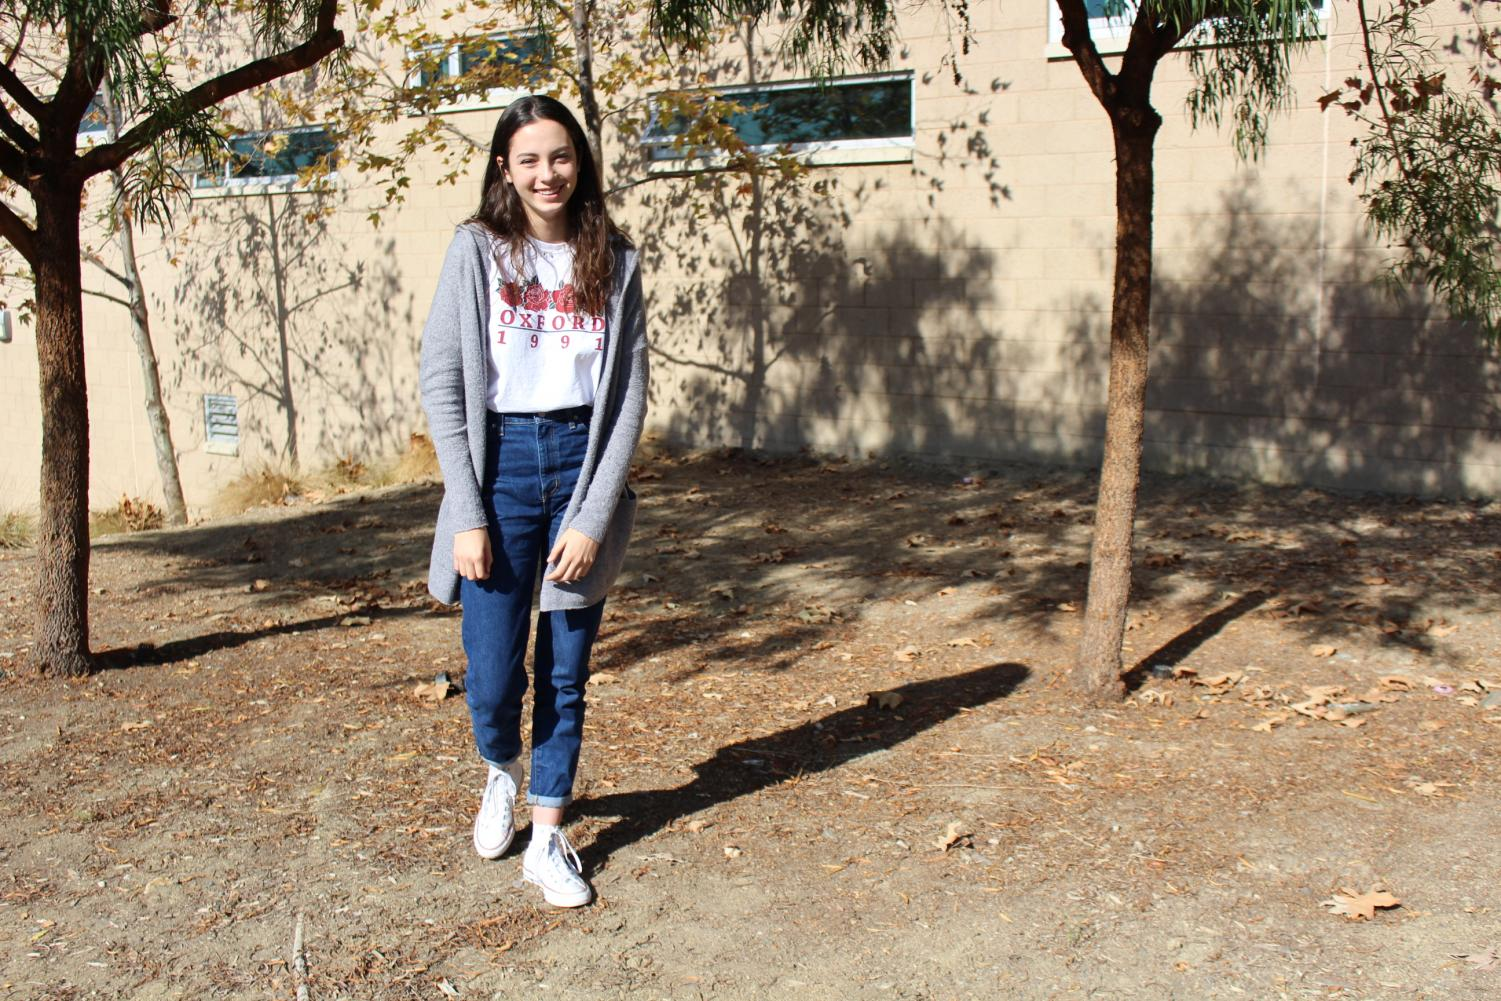 Sophomore+Sydney+Ahrendt%2C++expresses+her+cute+yet+comfortable+style+with+pieces+from+Urban+Outfitters+and+Nordstroms.+While+making+sure+to+avoid+clashing+patterns+Ahrendt+reminds+students+to+%C2%A8always+dress+comfortably.%22